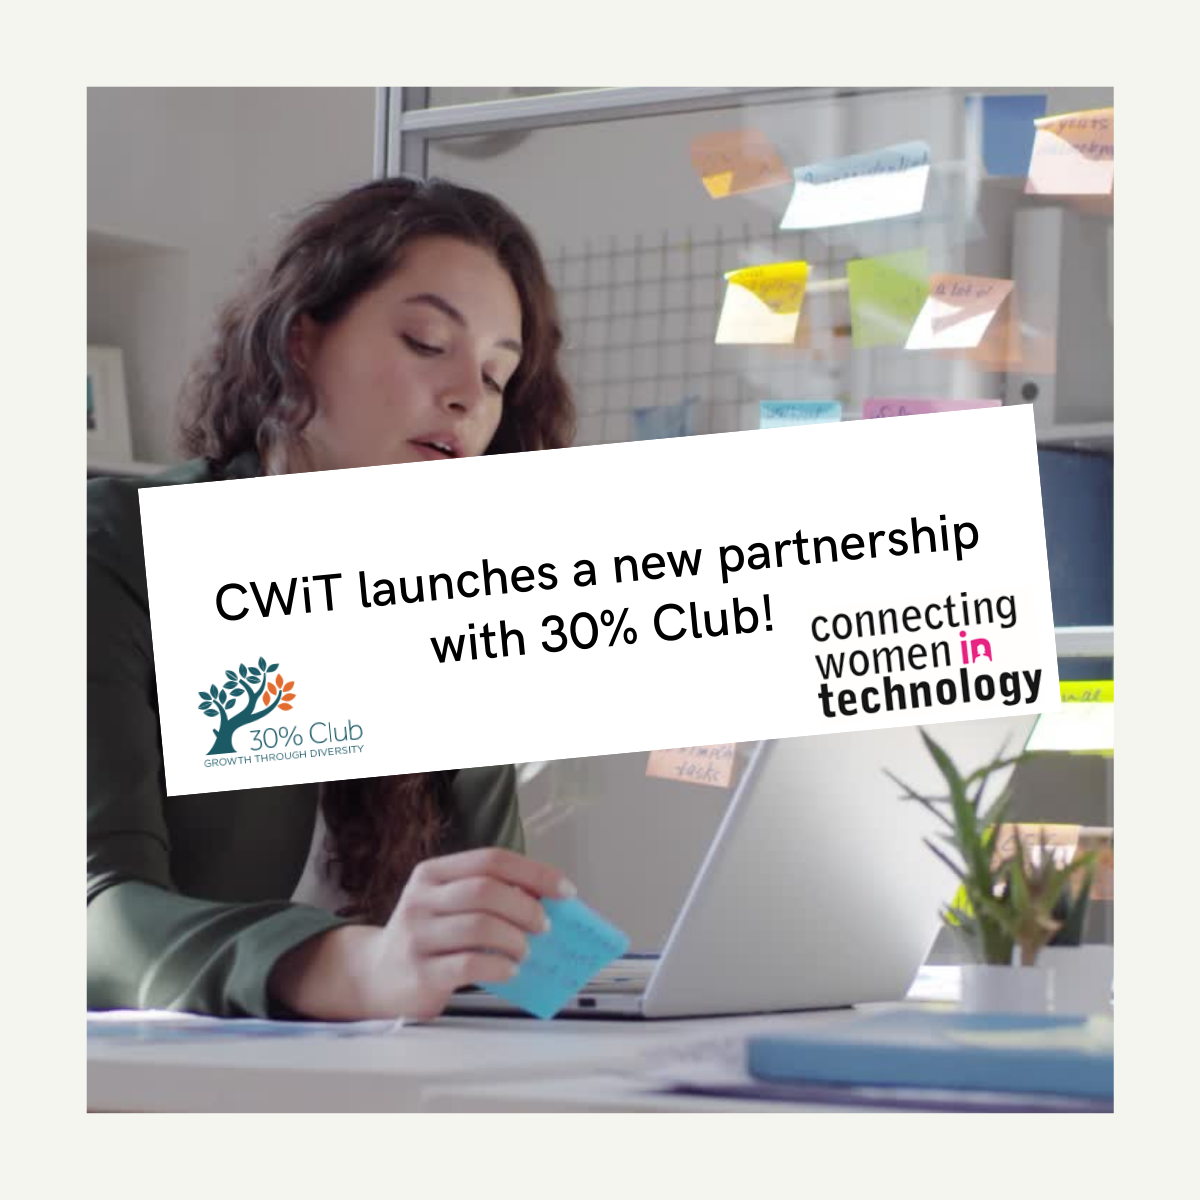 CWiT and 30% Club working together to advance gender balance in the technology sector